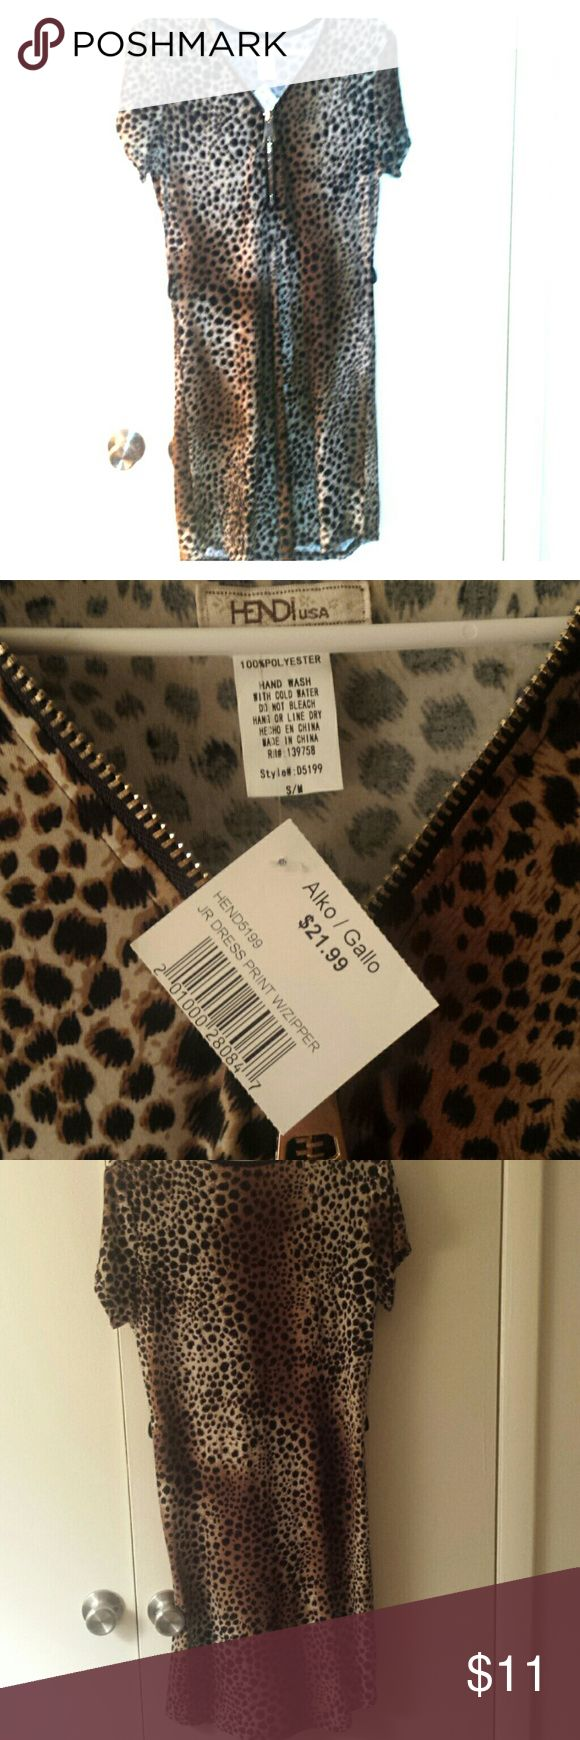 NWT Cheetah Dress Cheetah dress, size S/M, never worn with tags on, belt loops on either side - never came with a belt, very stretchy/comfy Hendi Dresses Midi